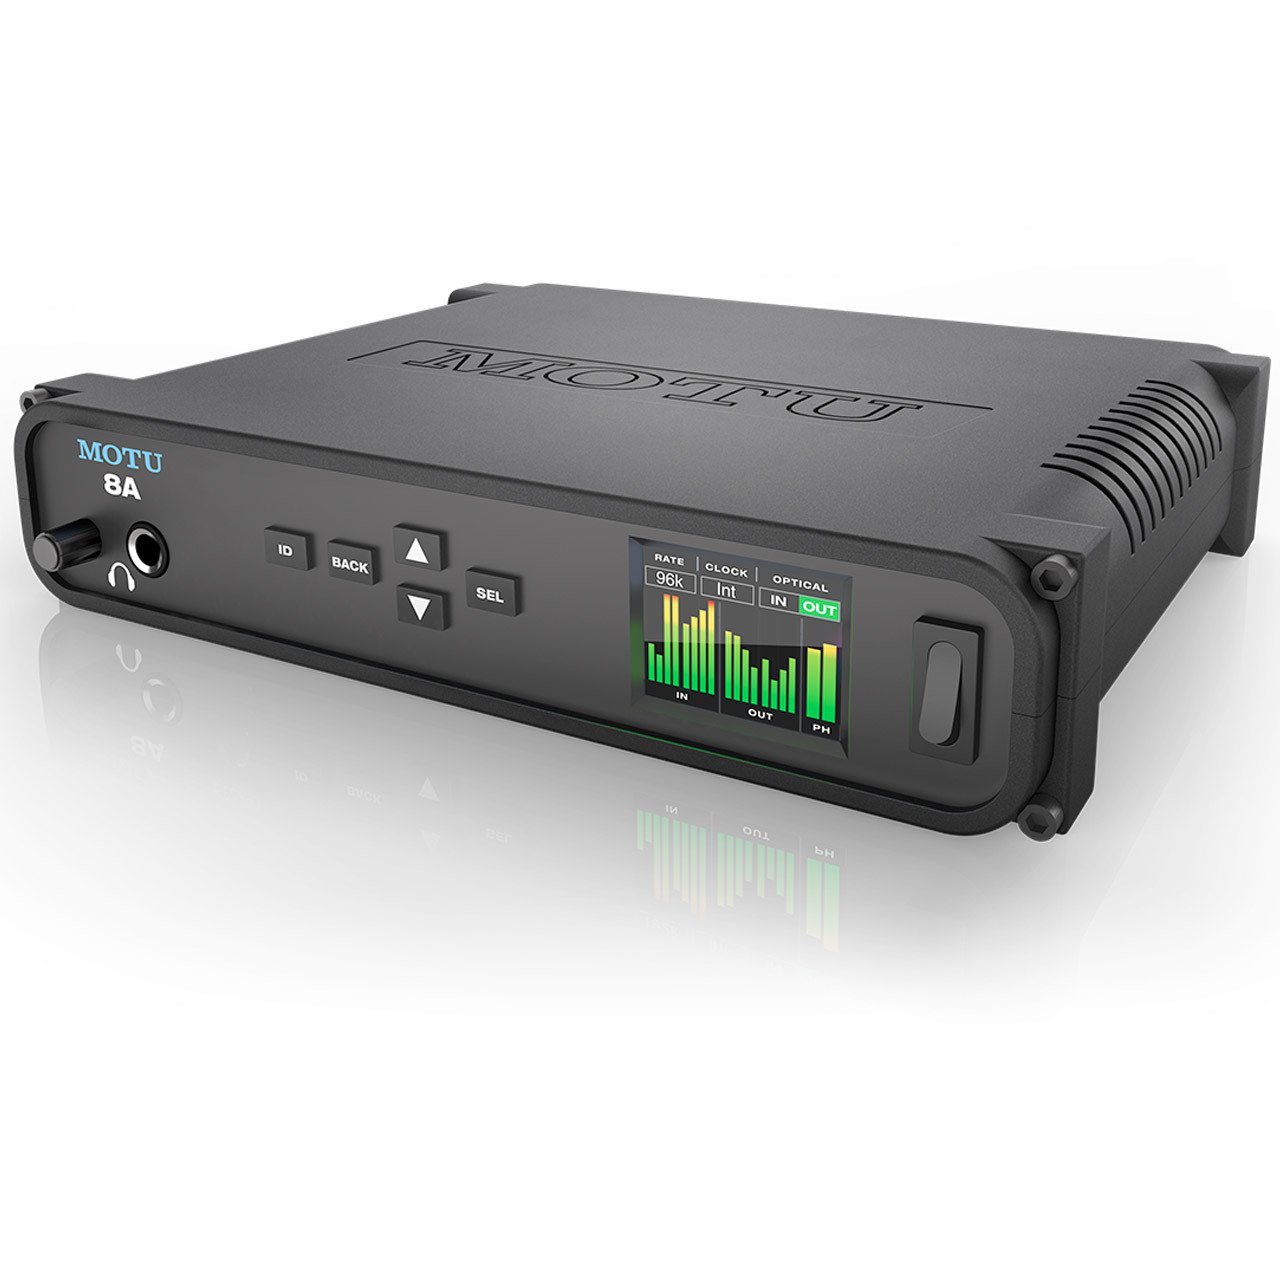 Thunderbolt Interfaces - MOTU 8A - AVB Thunderbolt/USB3 Audio Interface With ESS Sabre32 DAC